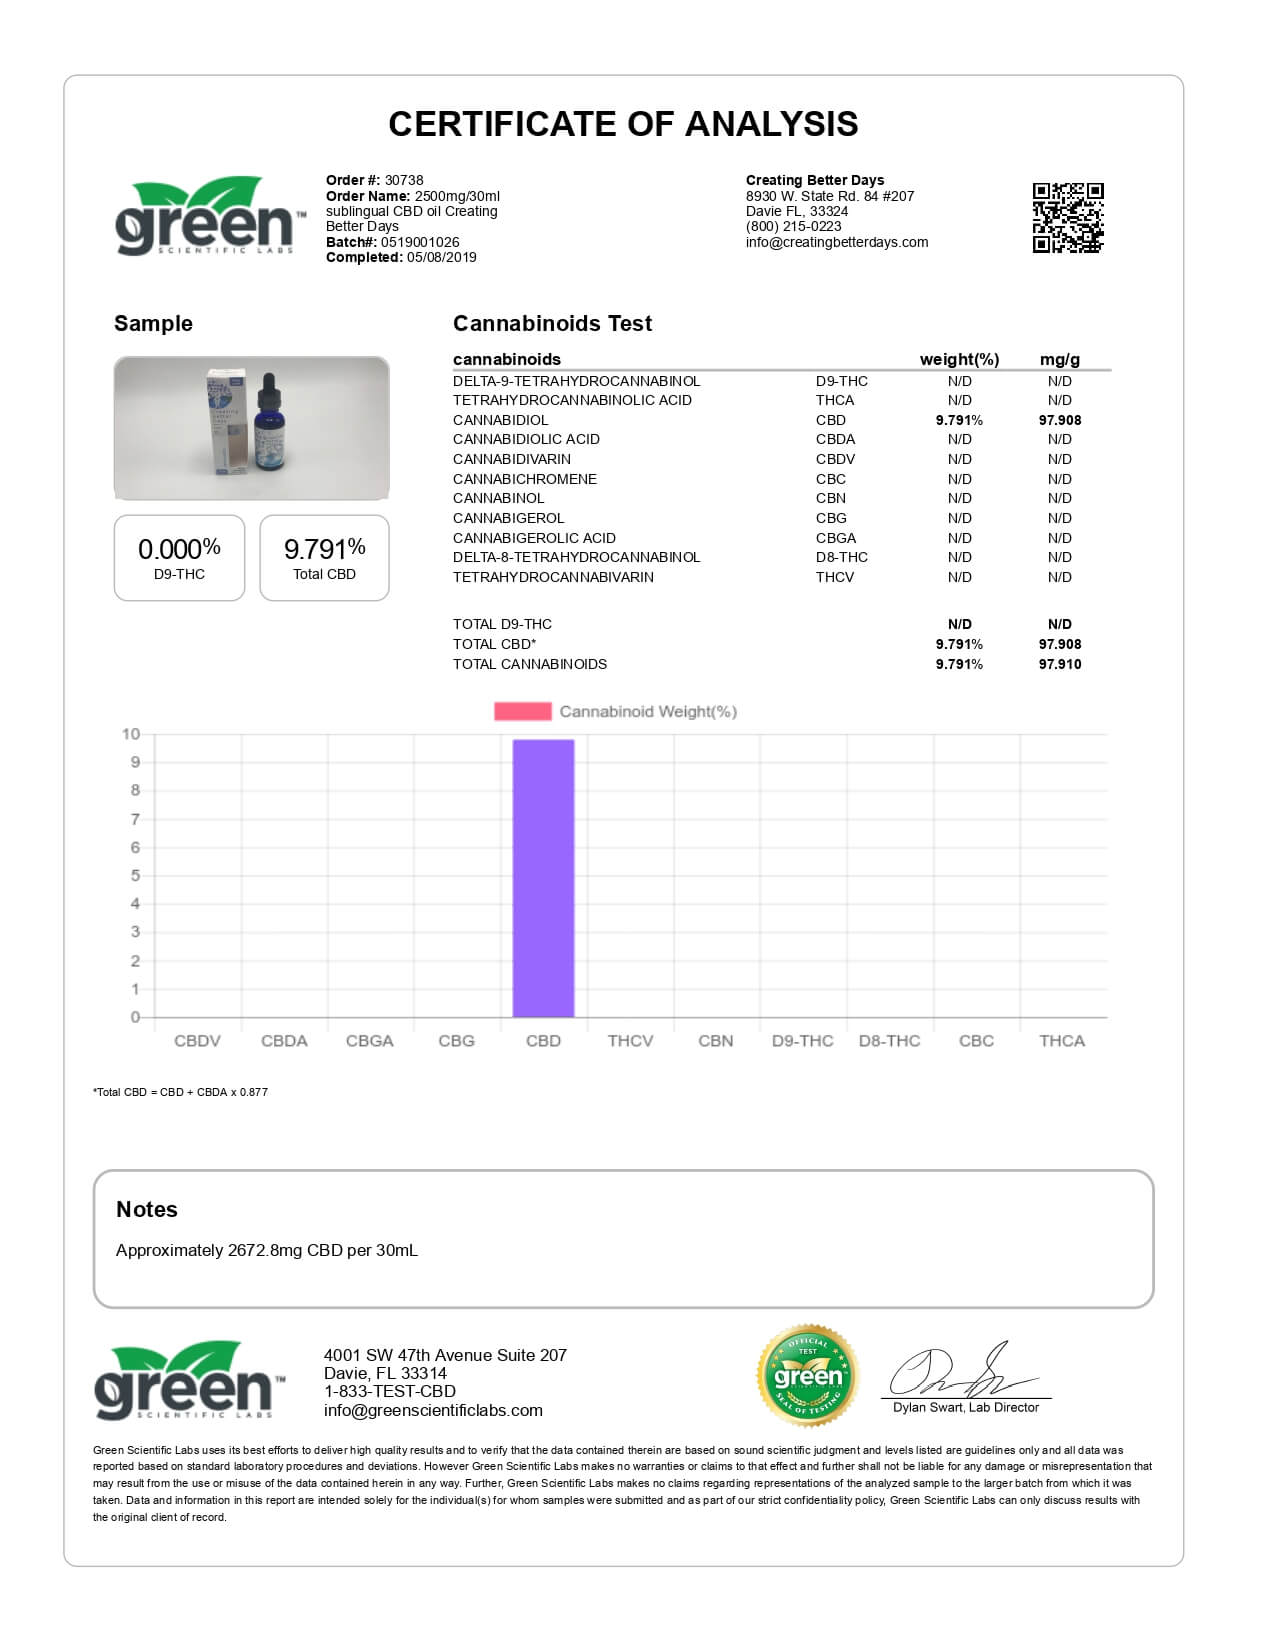 Creating Better Days CBD Tincture Sublingual Oil 2500mg Lab Report